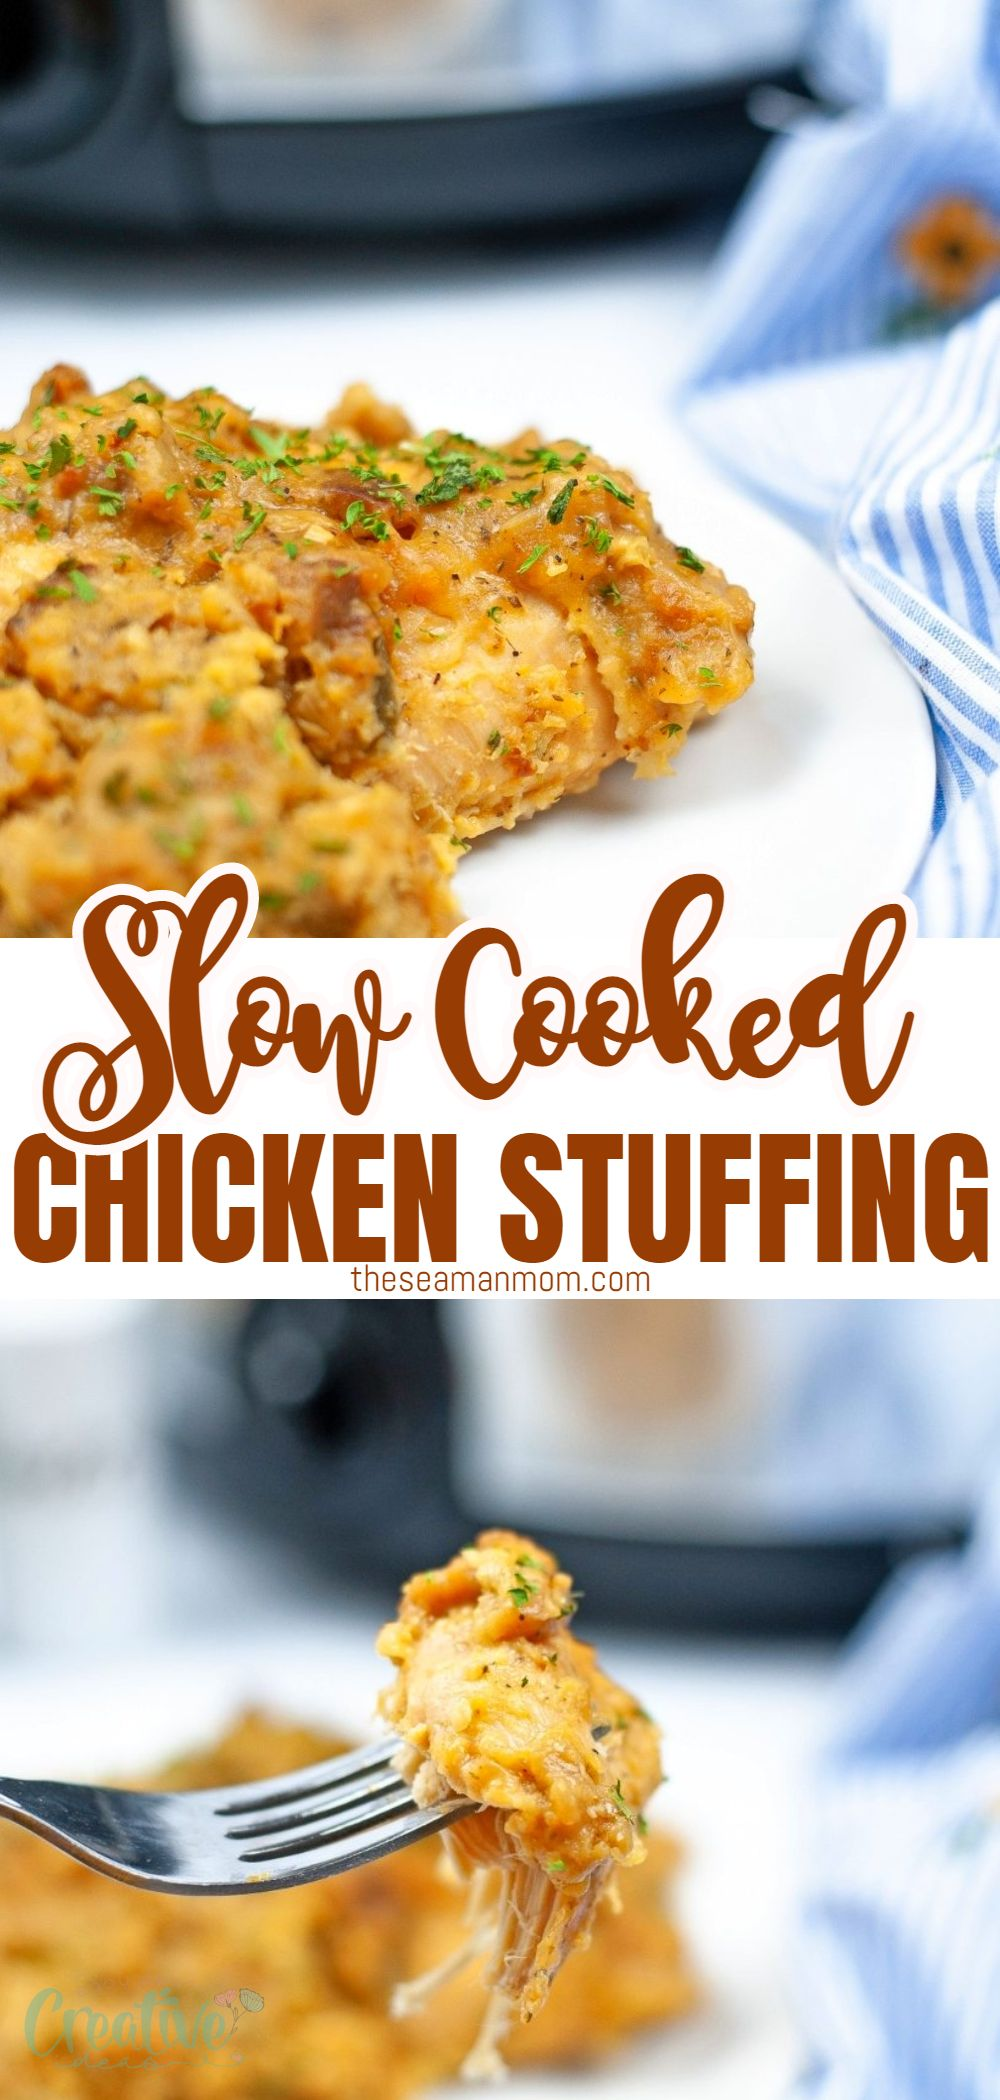 With the help of this easy slow cooker chicken and stuffing casserole, you can prepare a delicious homecooked meal for your family with just a few minutes of prep work! via @petroneagu